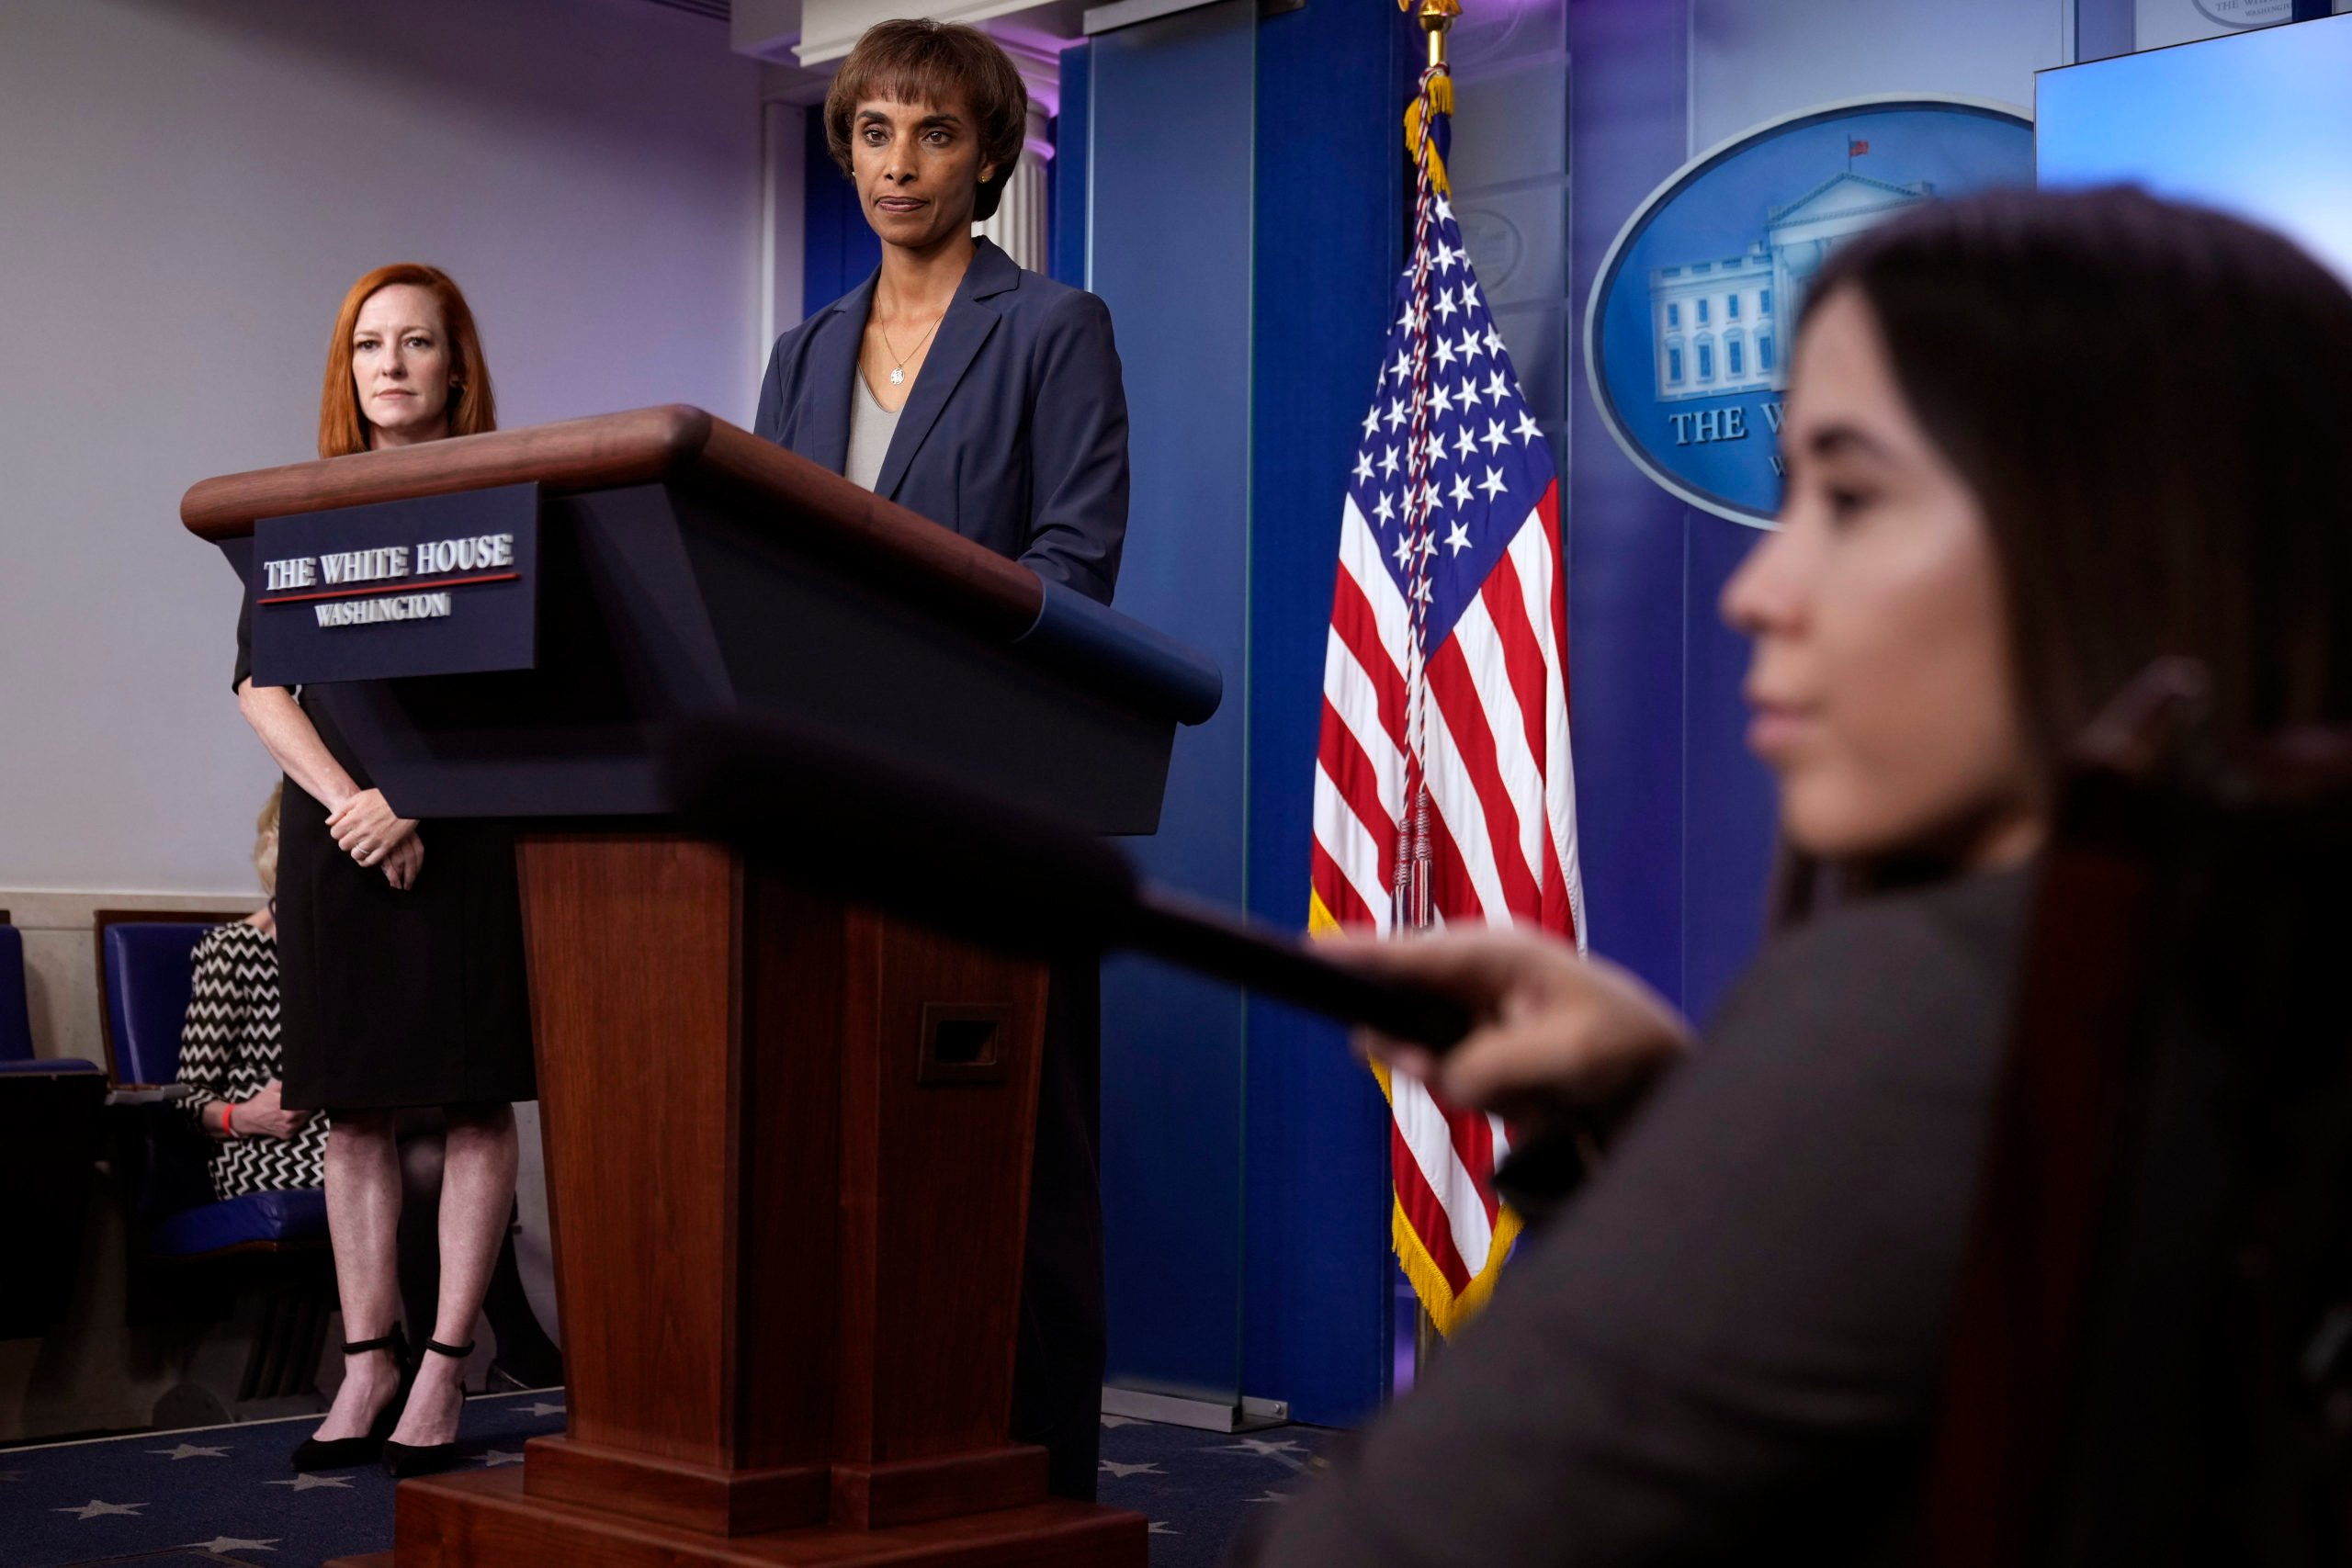 Chair of the Council of Economic Advisers Cecilia Rouse speaks during a press briefing on May 14. (Drew Angerer/Getty Images)